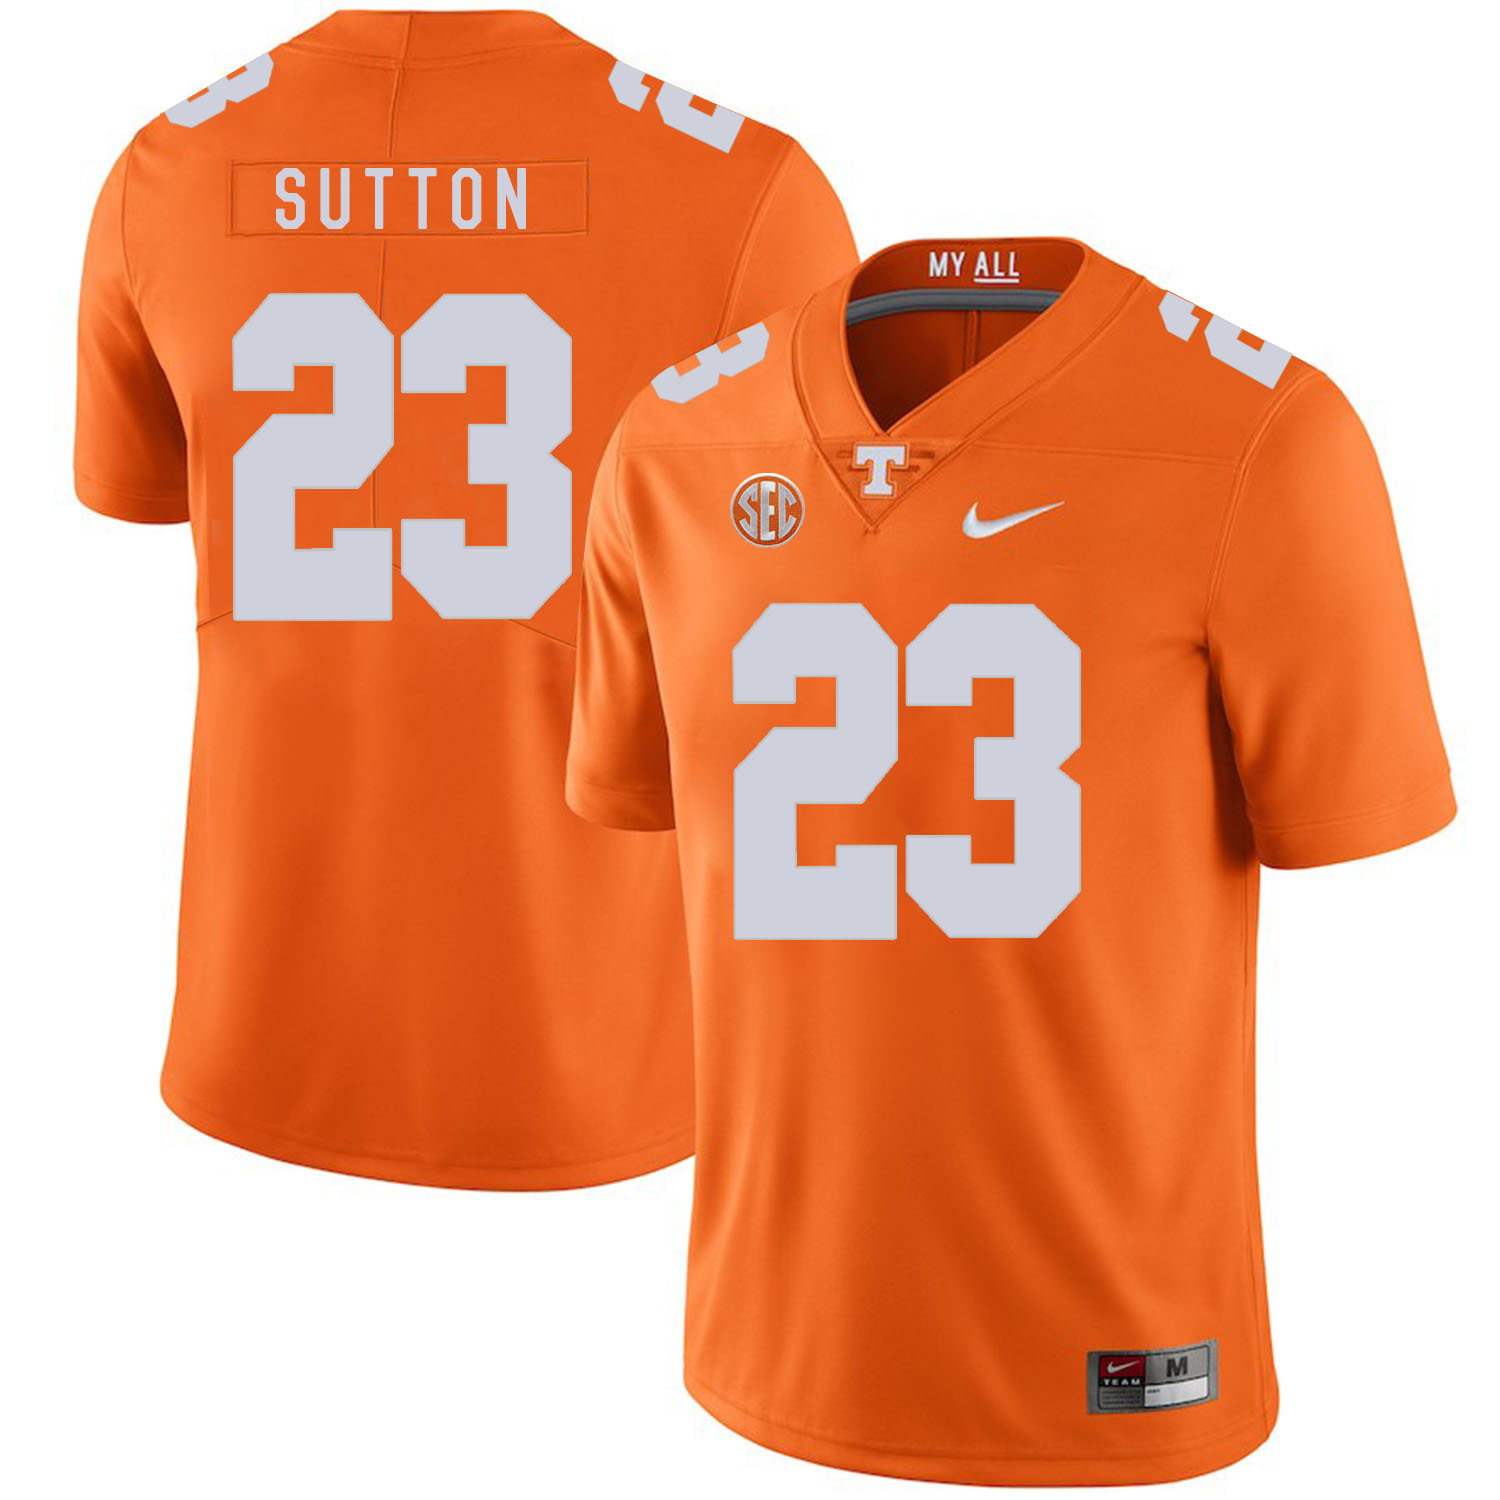 Tennessee Volunteers 23 Cameron Sutton Orange Nike College Football Jersey